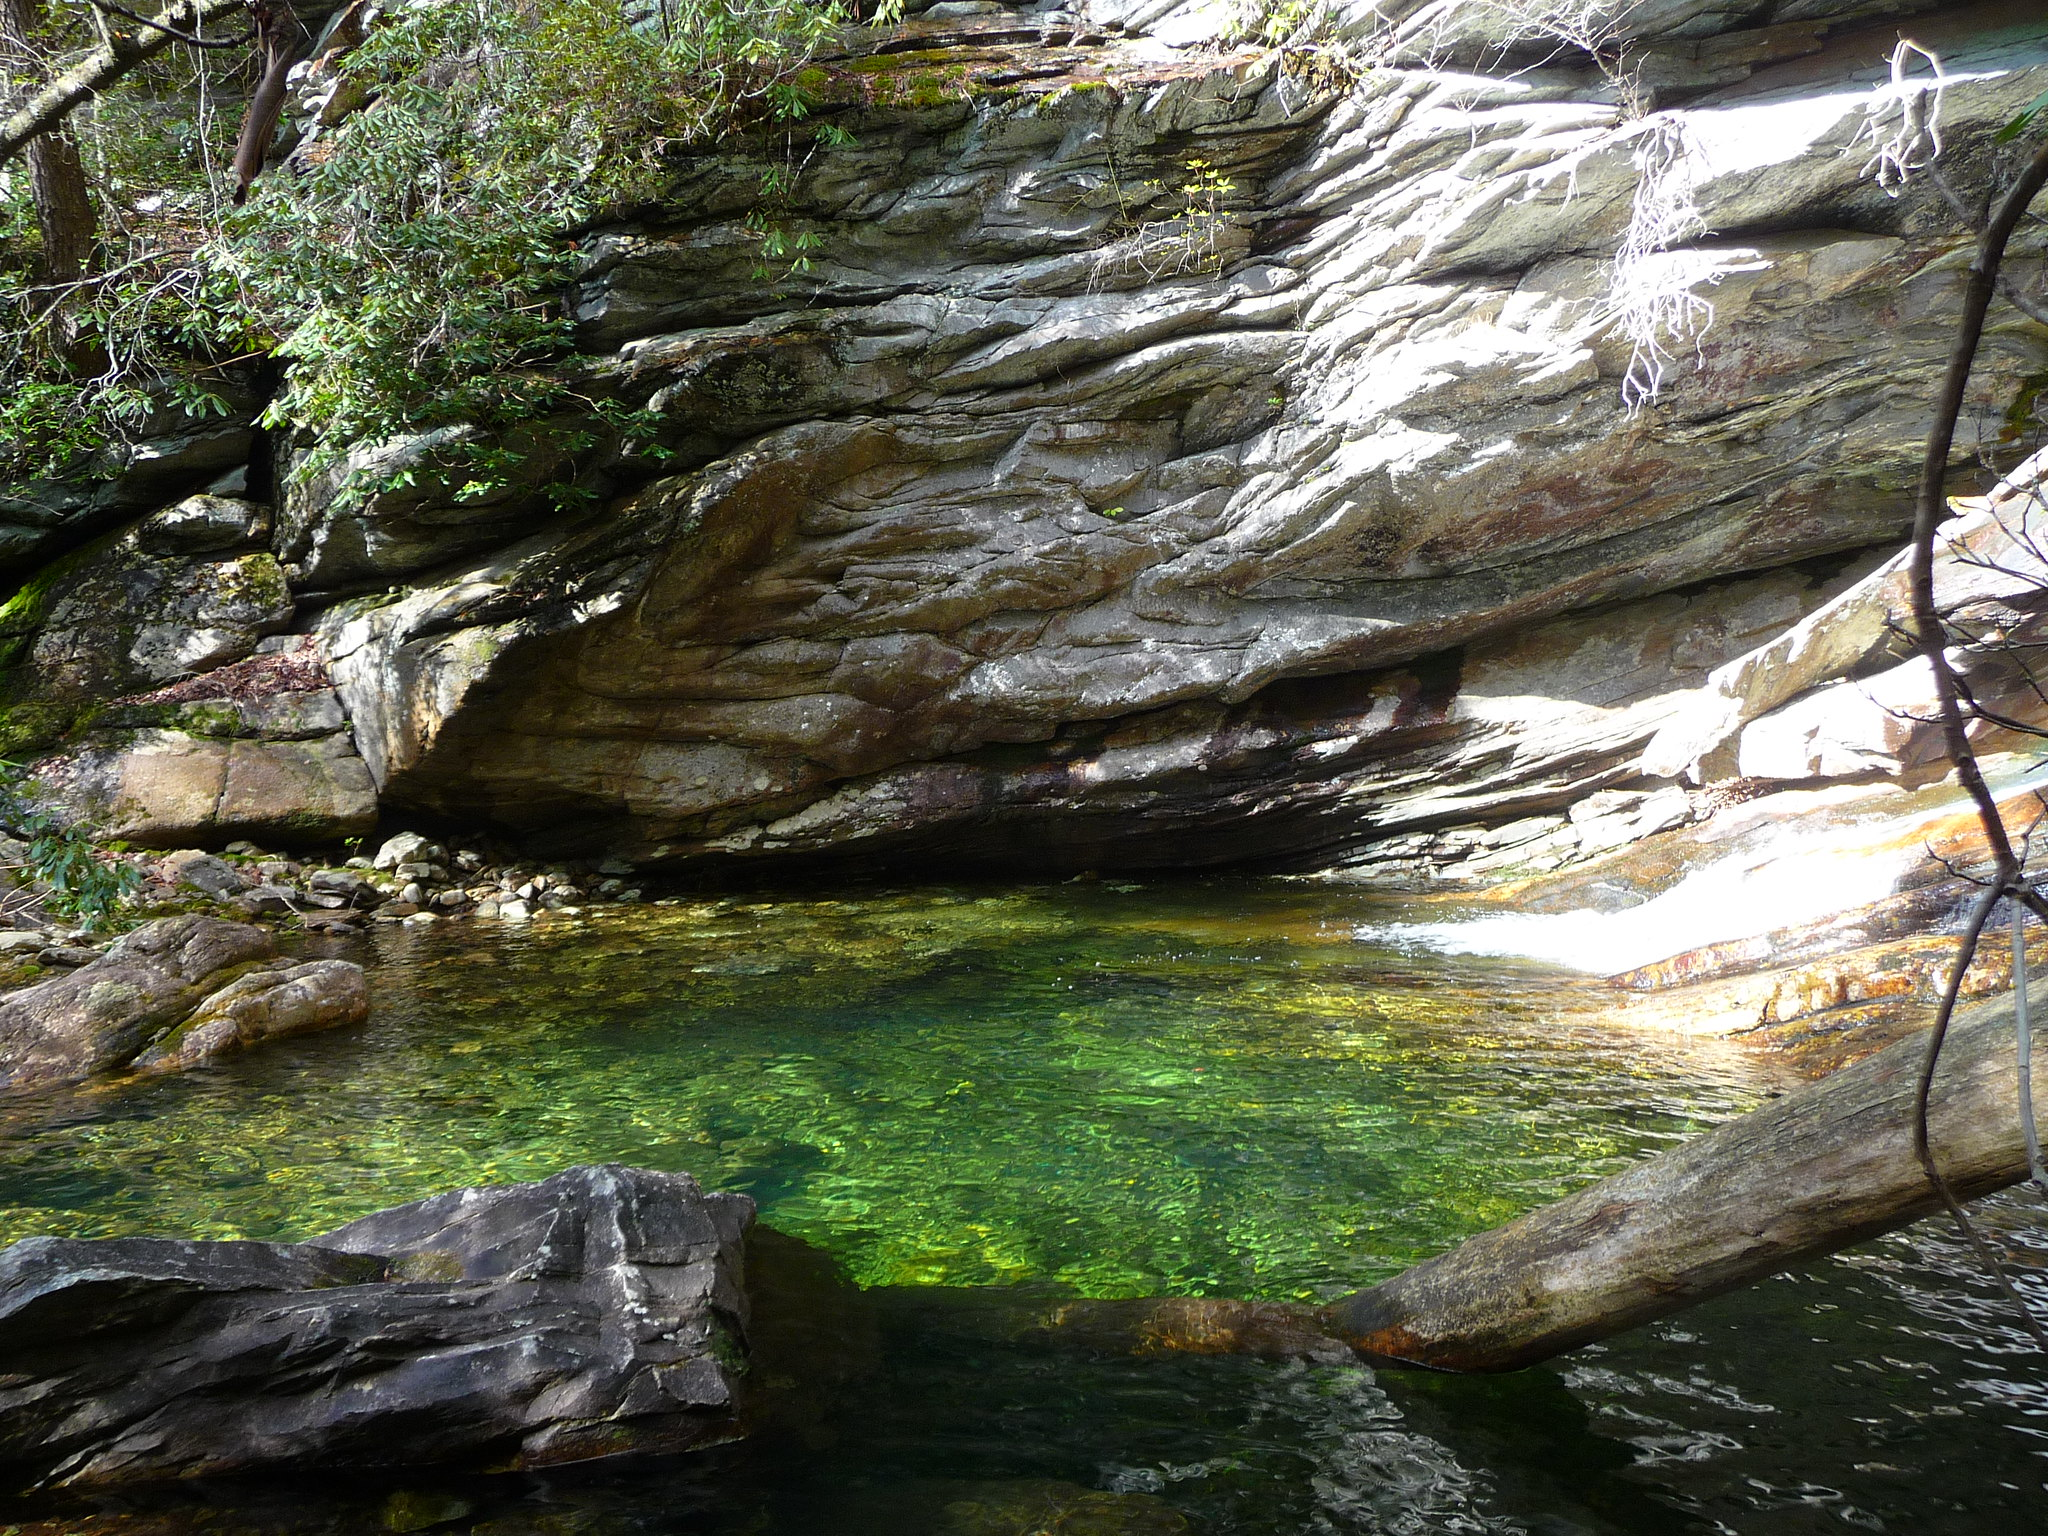 Take a Dip in Colorados Paradise Cove! - Traveling GypsyRN | Colorado travel, Paradise cove